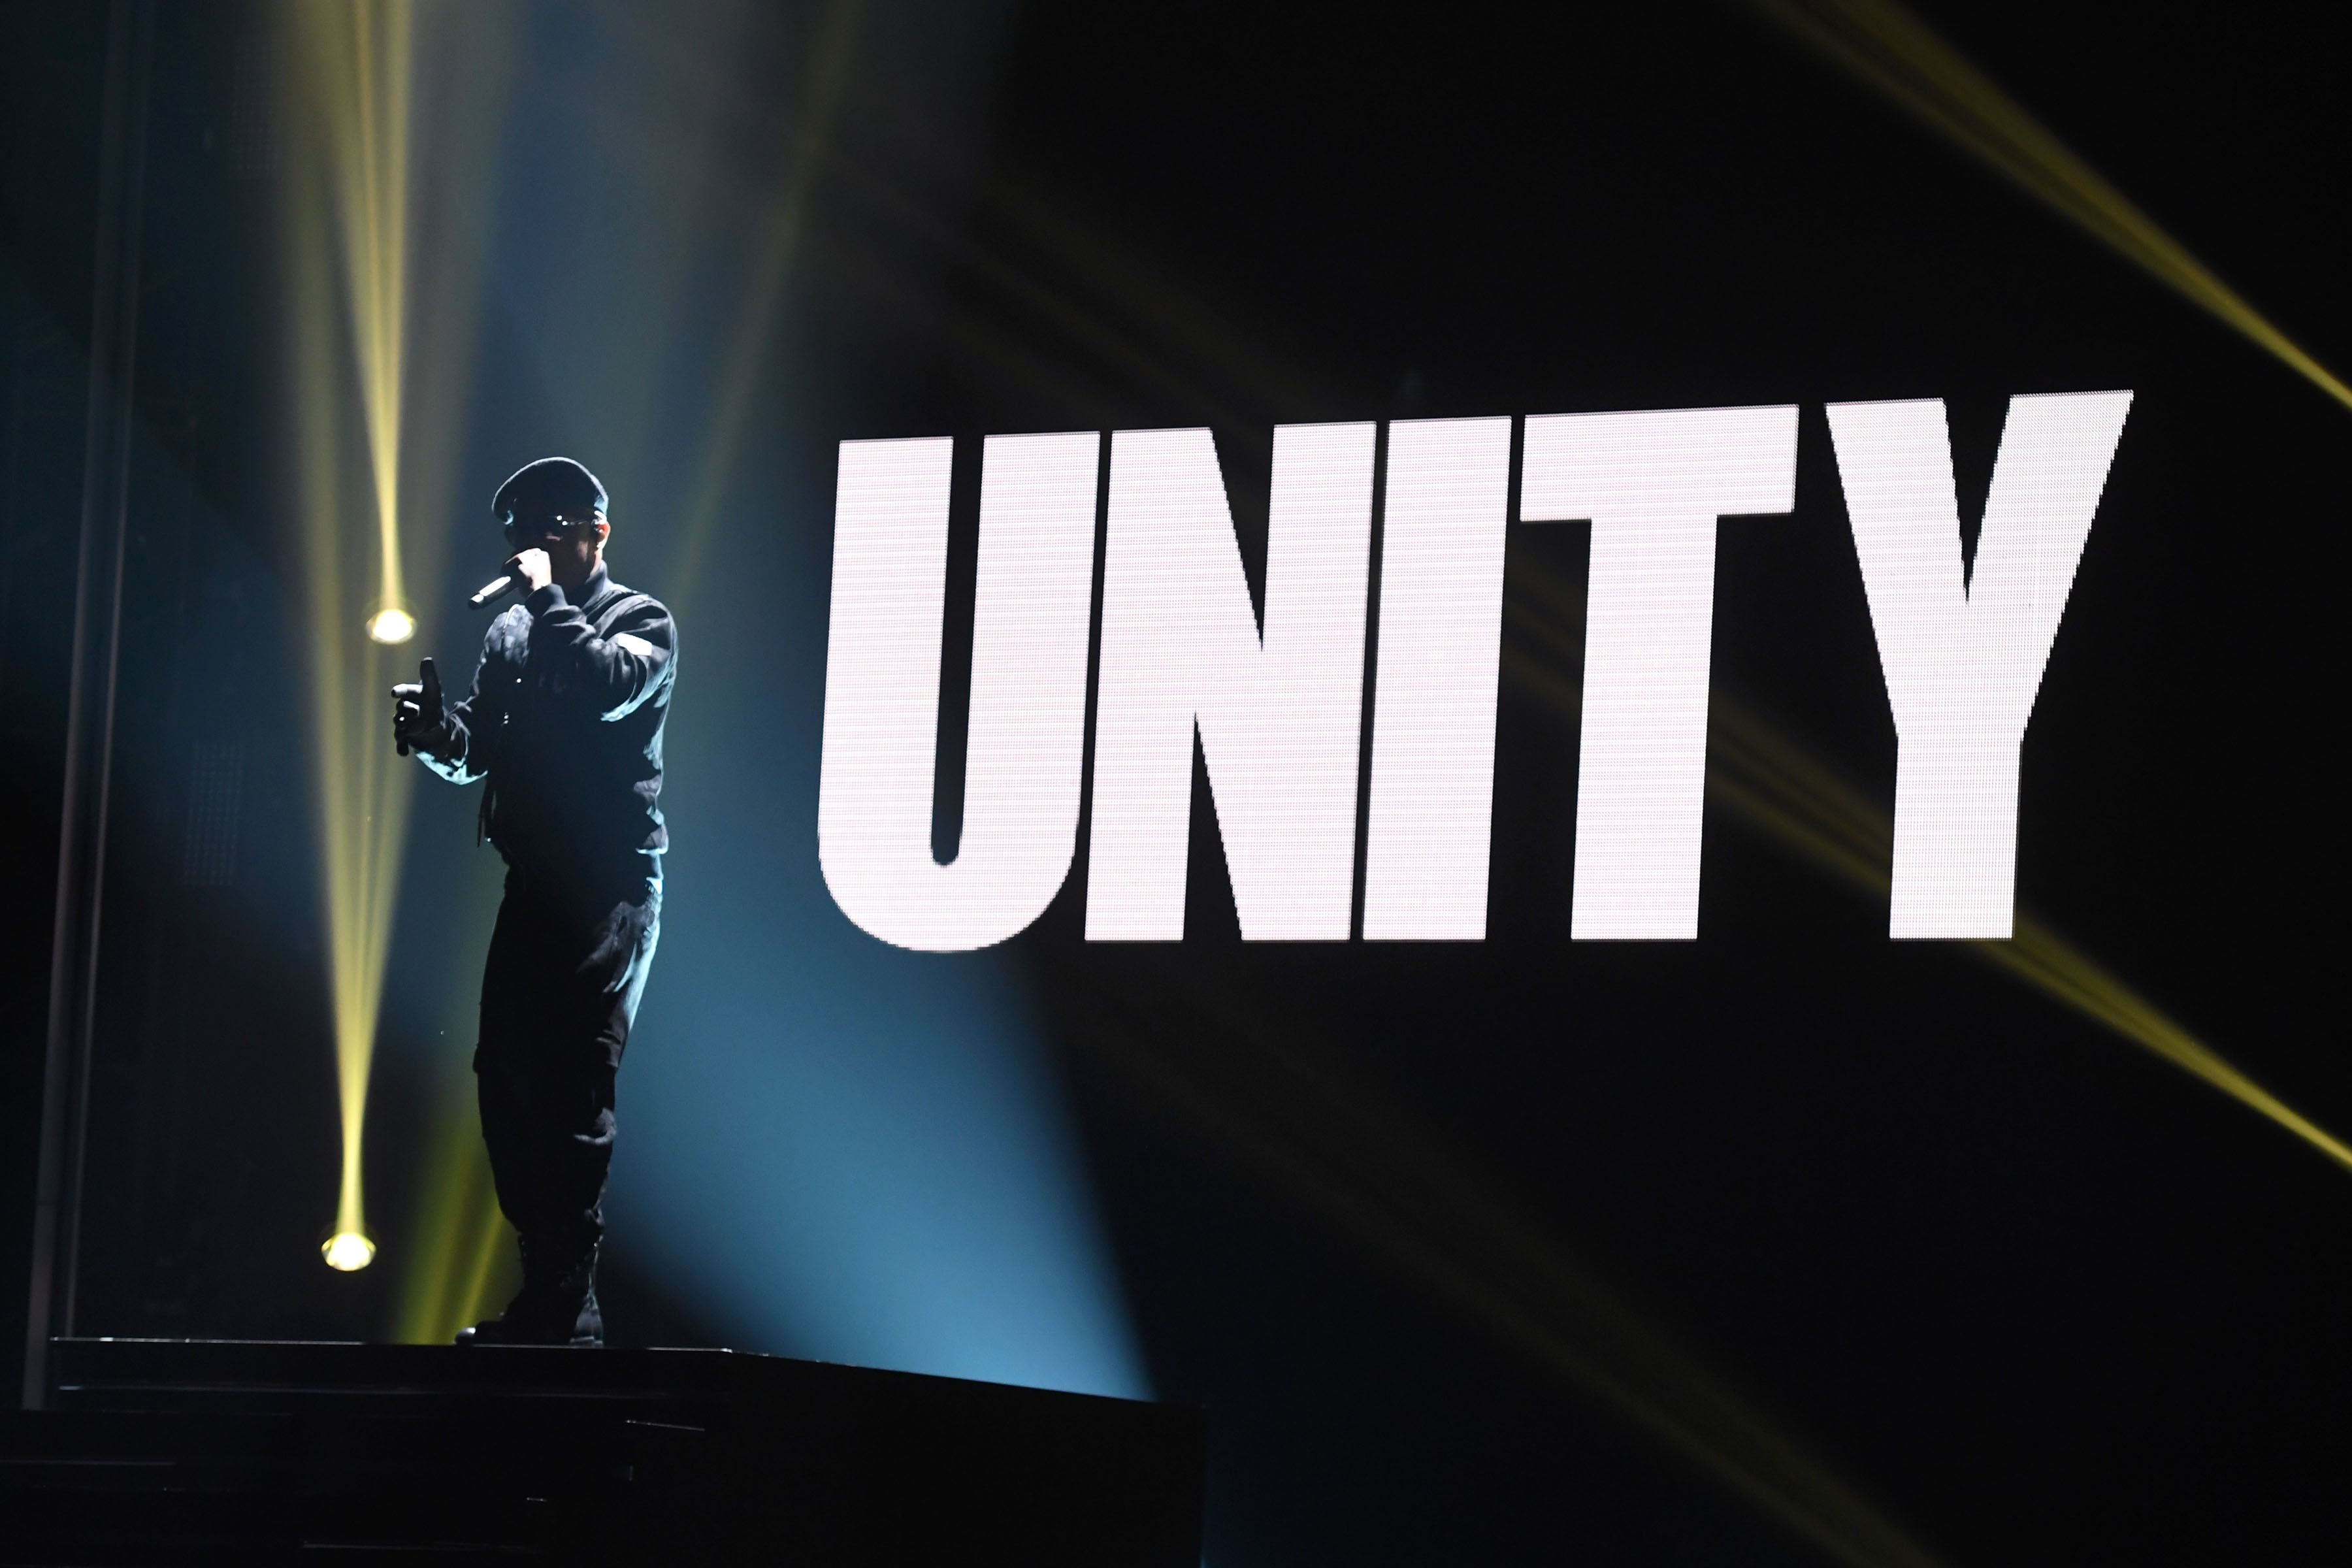 BET HIP HOP AWARDS: Five Key Moments of the Show